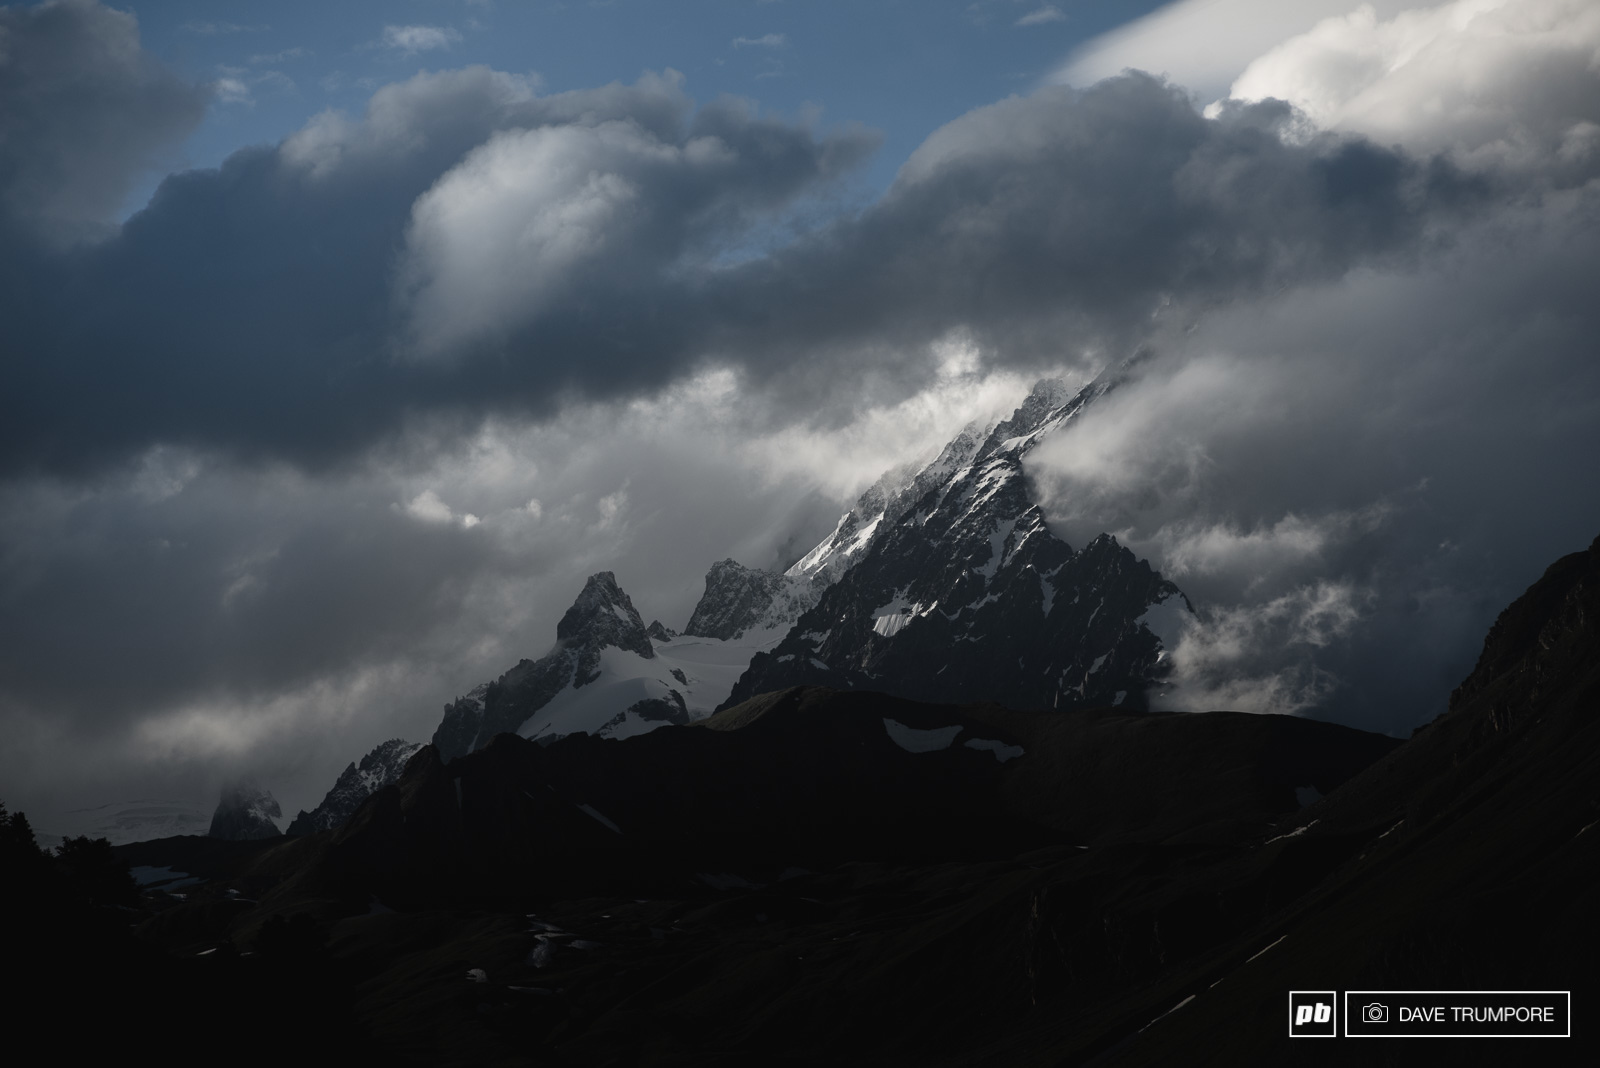 The summit of Monte Bianco towering some 3200 meters above the village of La Thuile dictates much of the weather here in the Aosta Valley. Weather that can change quickly and often.